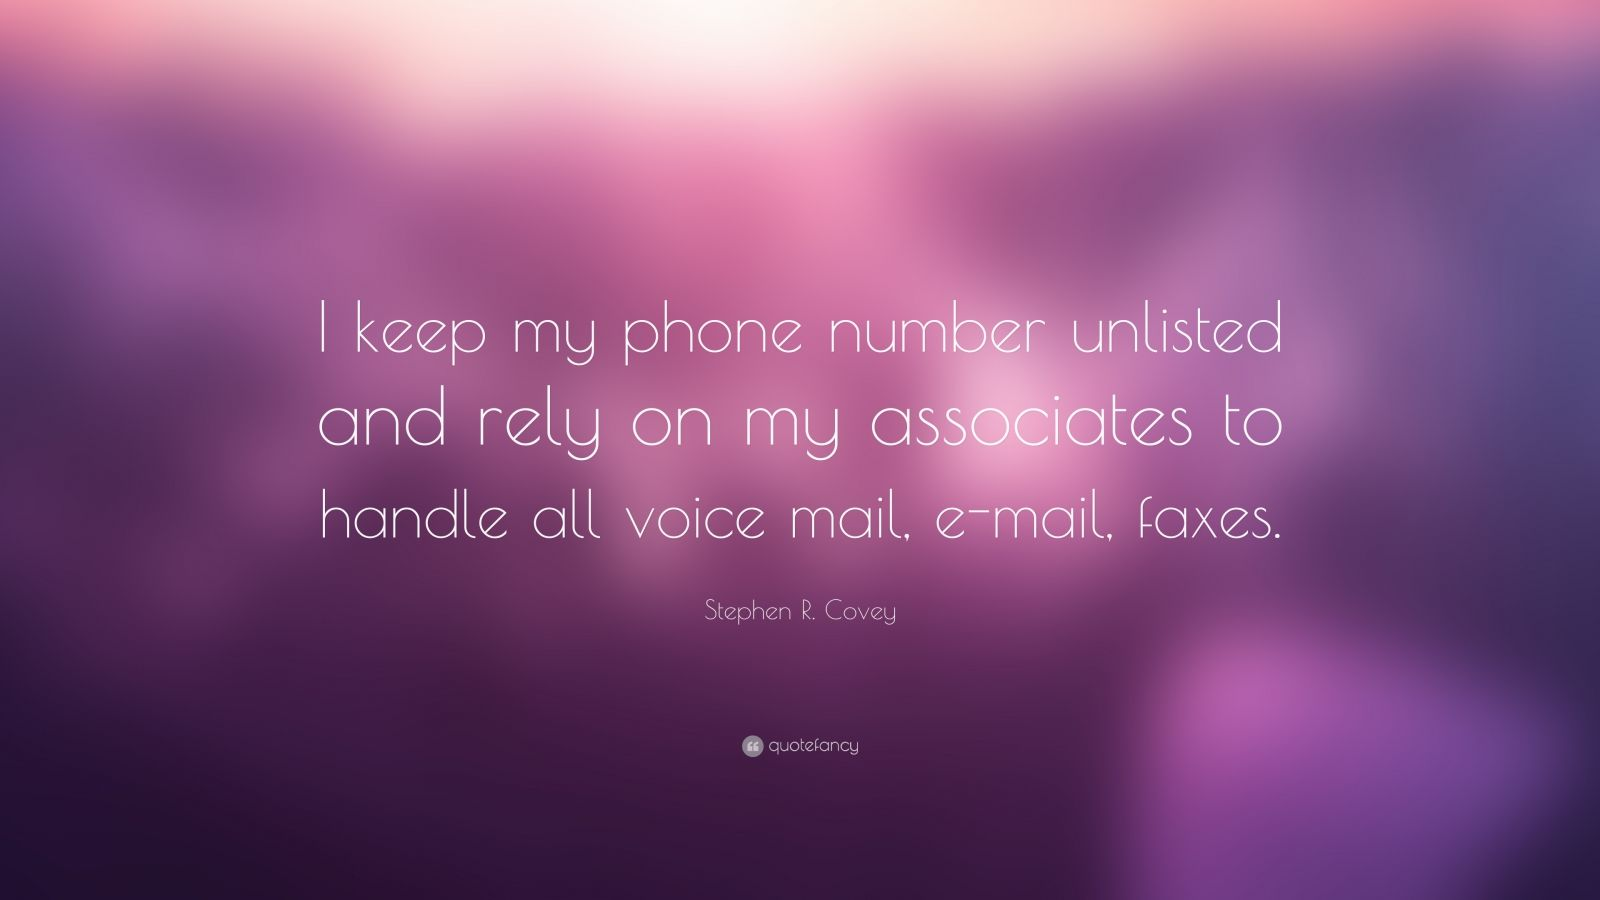 """Stephen R. Covey Quote: """"I keep my phone number unlisted and rely on my associates to handle all voice mail, e-mail, faxes."""""""